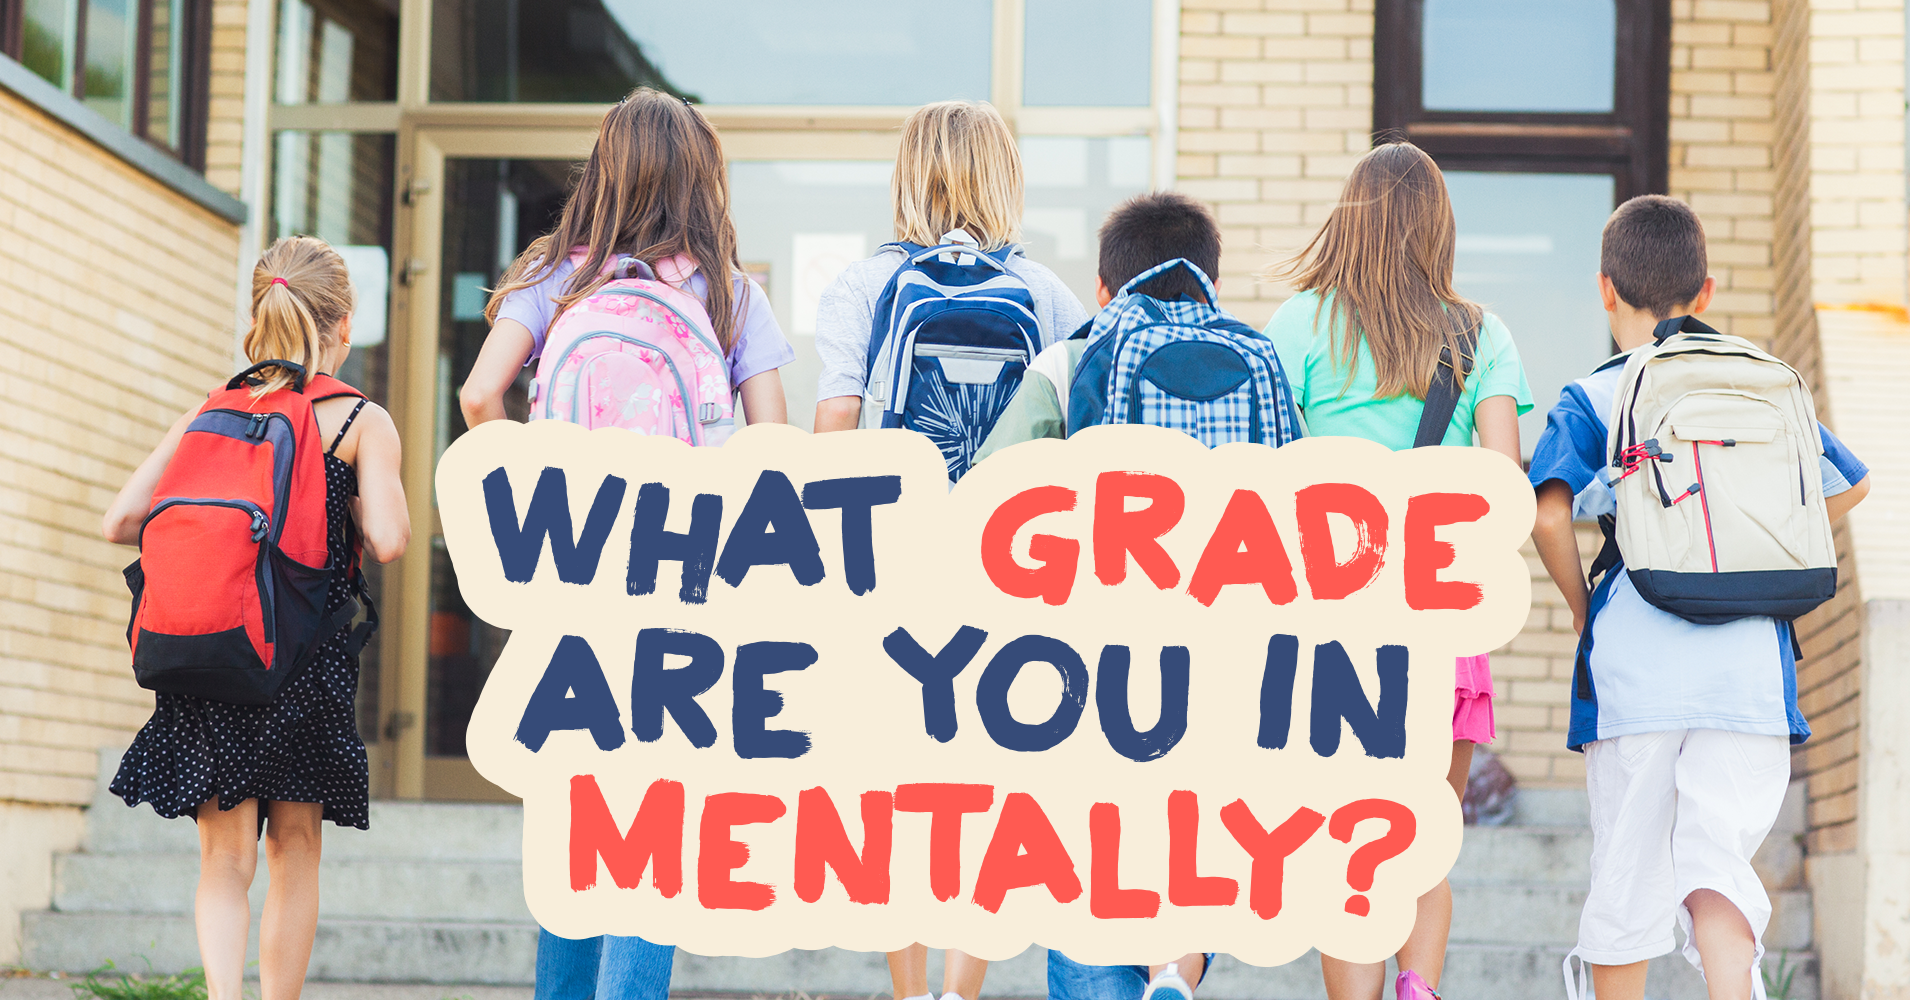 what grade are you in mentally  - quiz